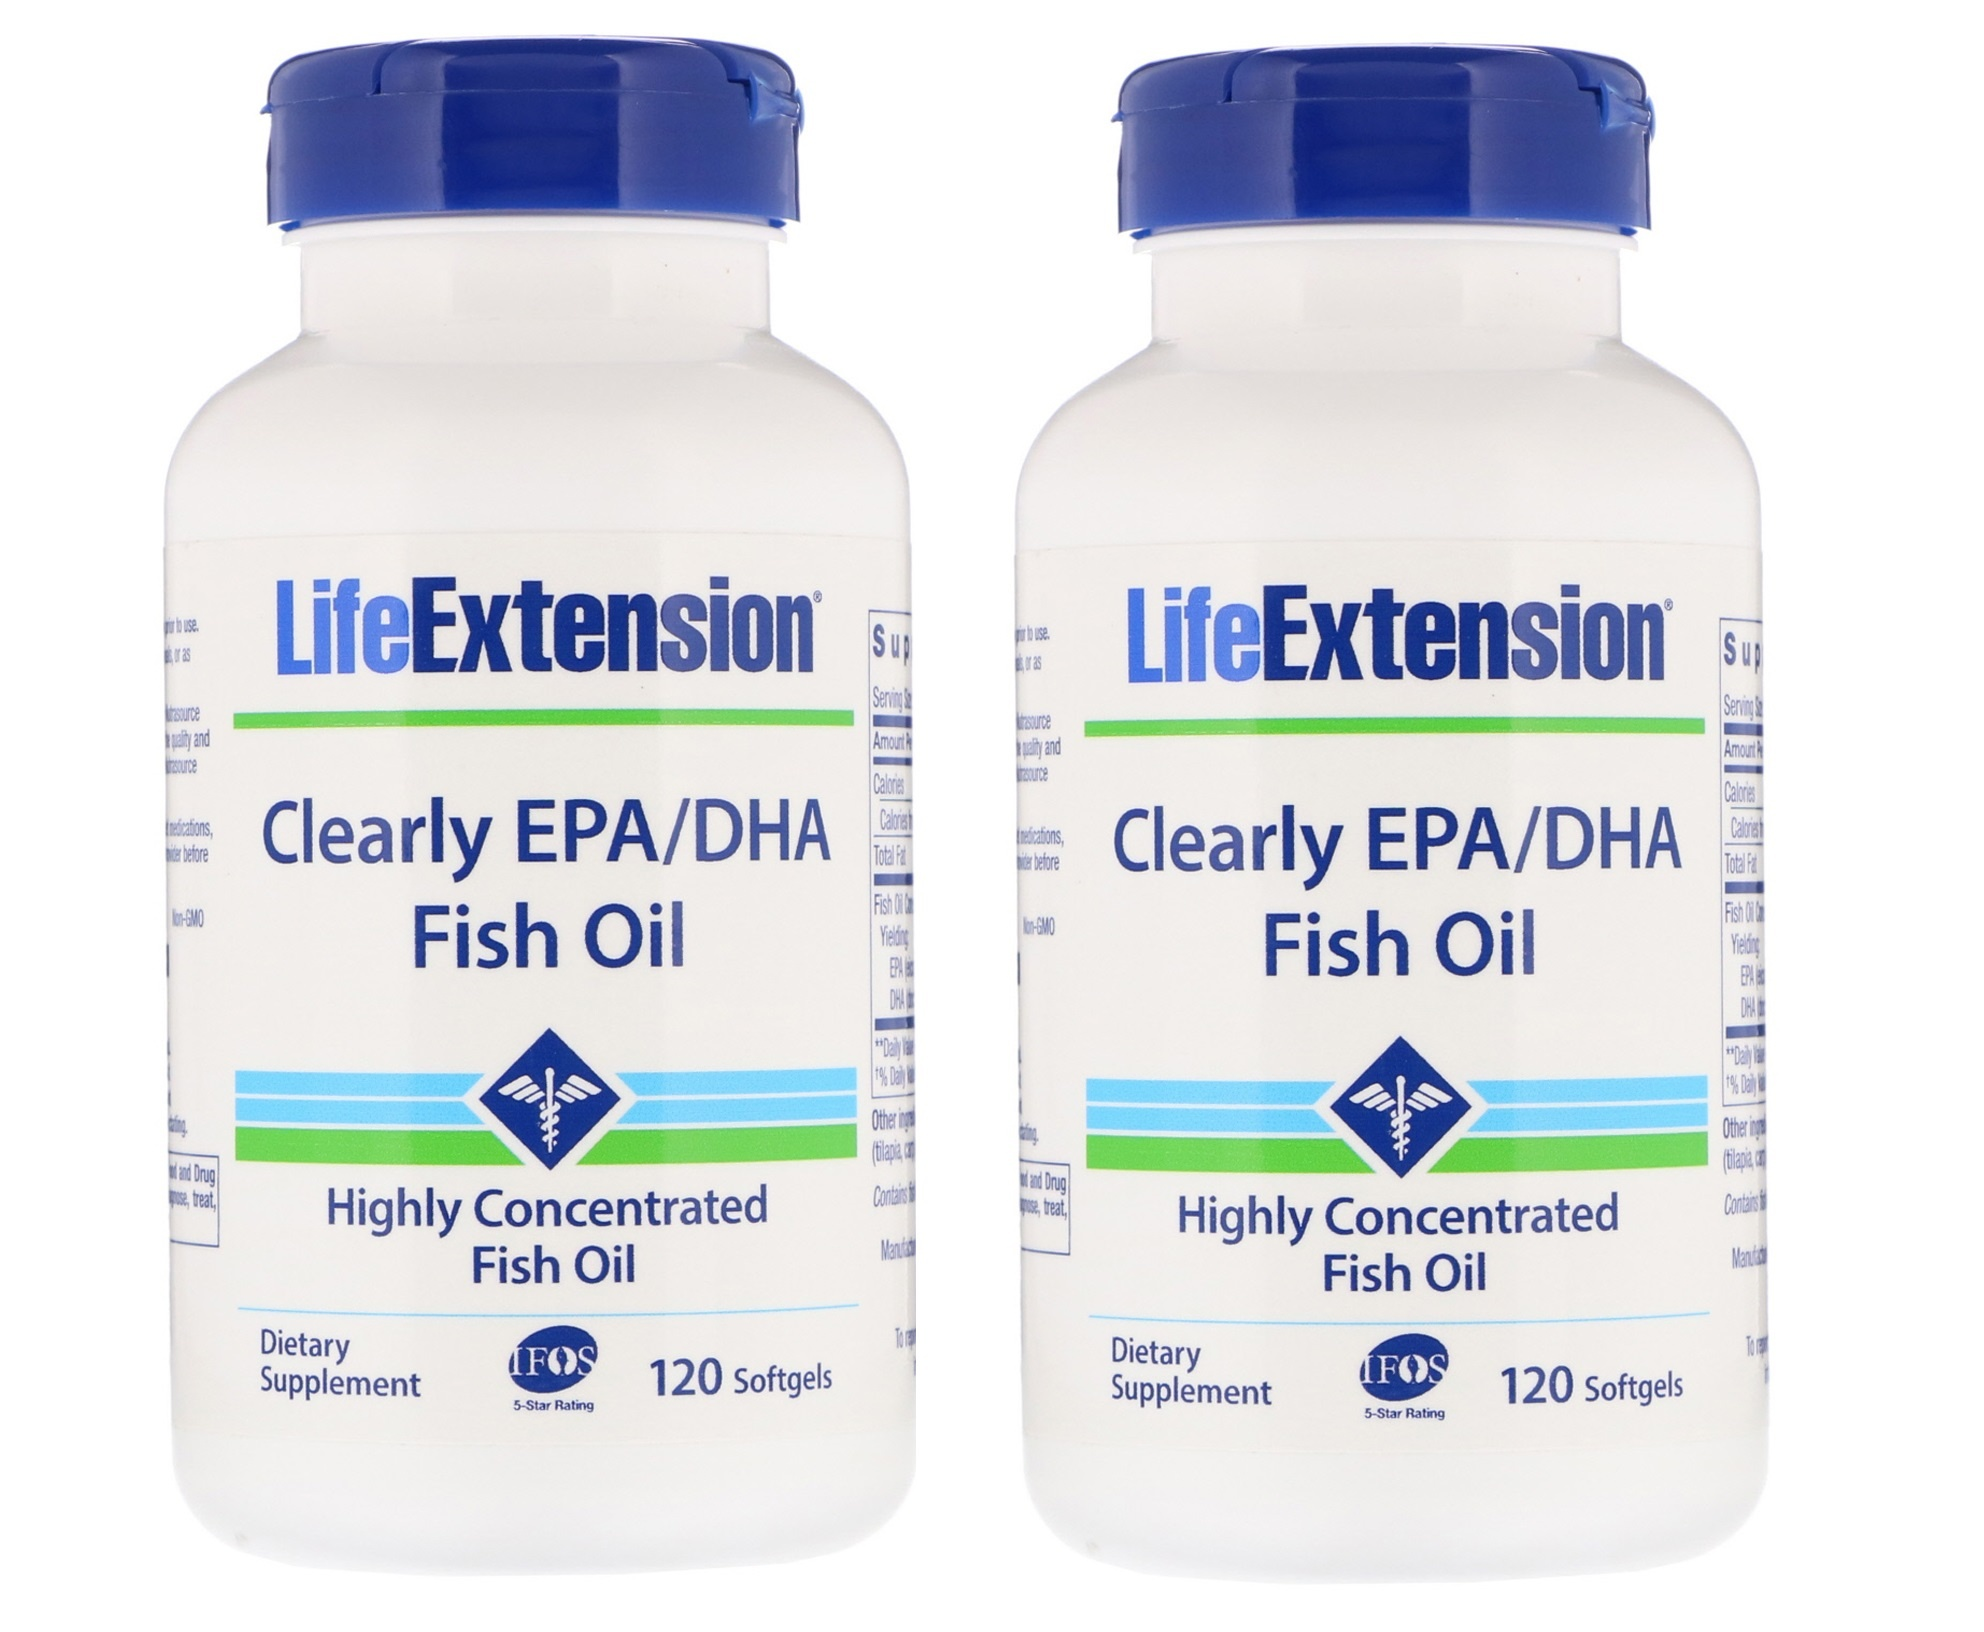 Life Extension Clearly EPA/DHA Fish Oil, 2-pack